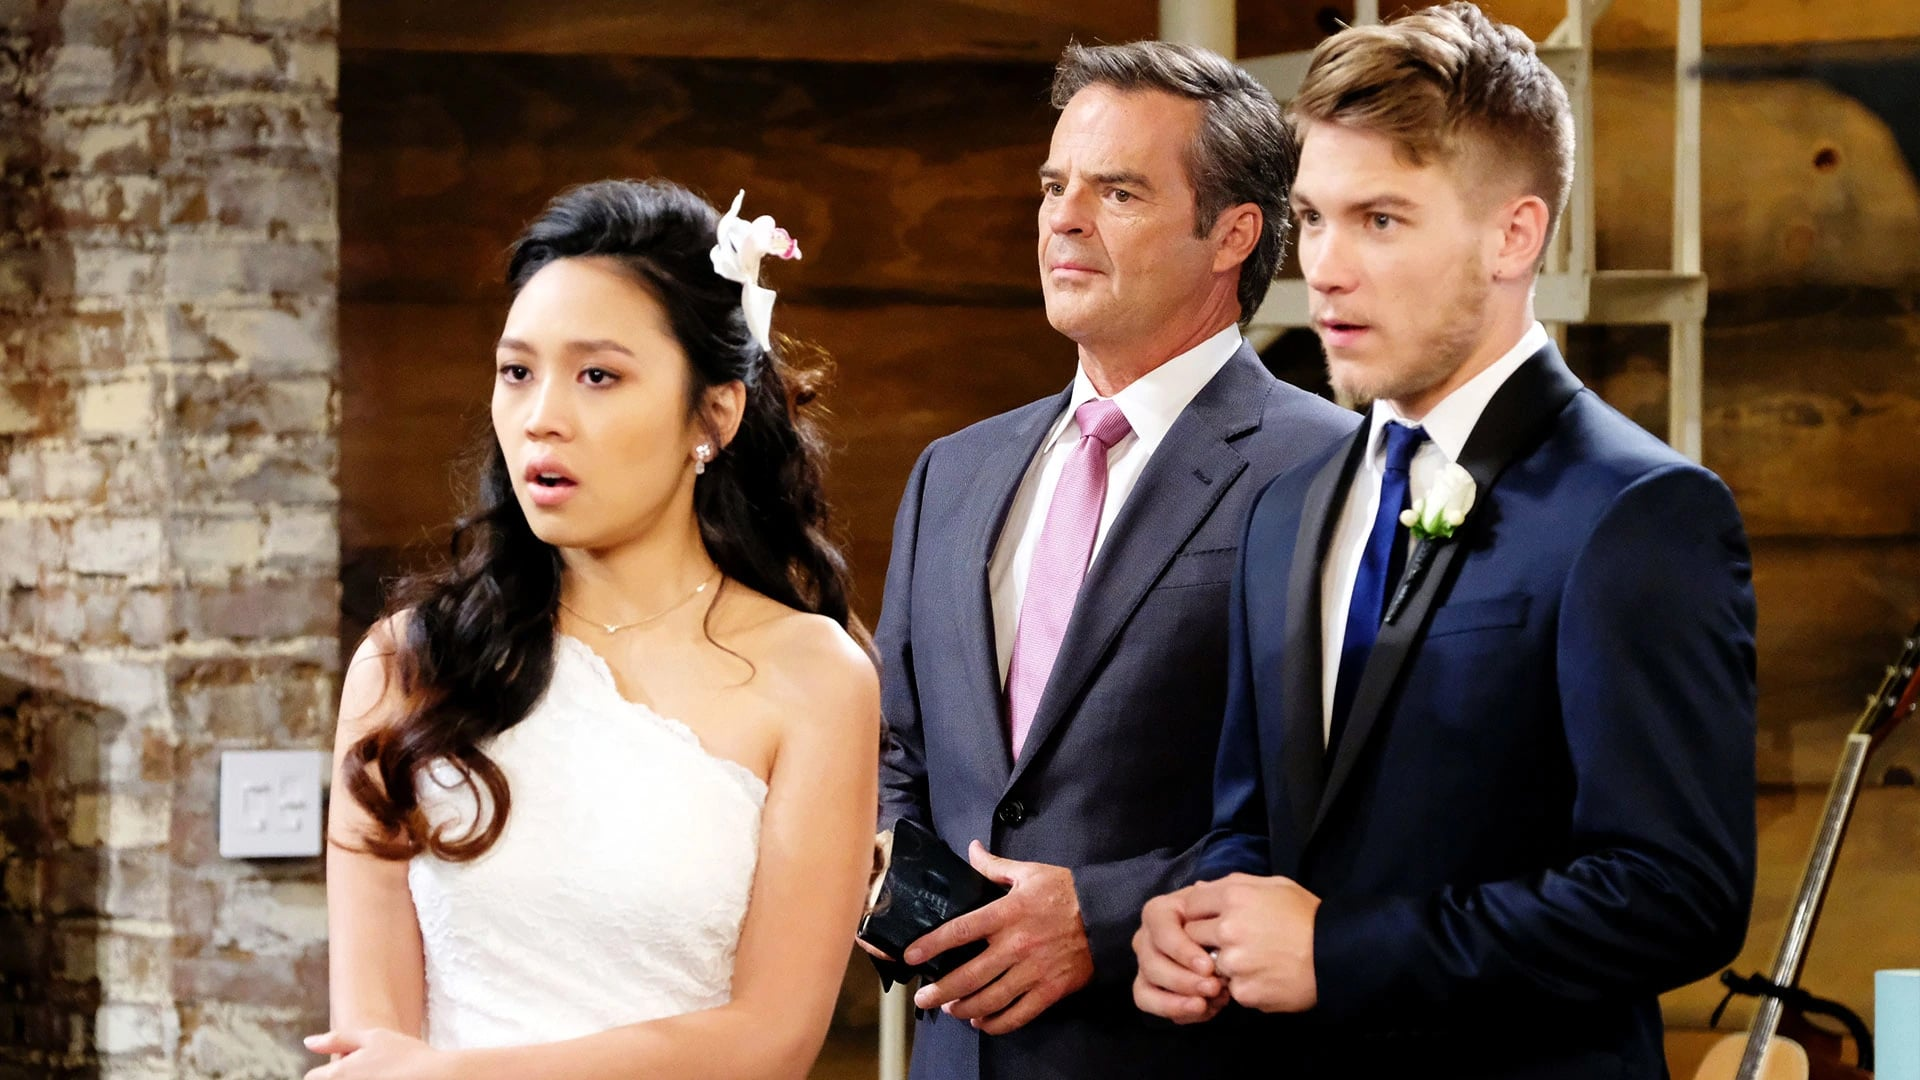 Days of Our Lives Season 54 :Episode 142  Friday April 12, 2019